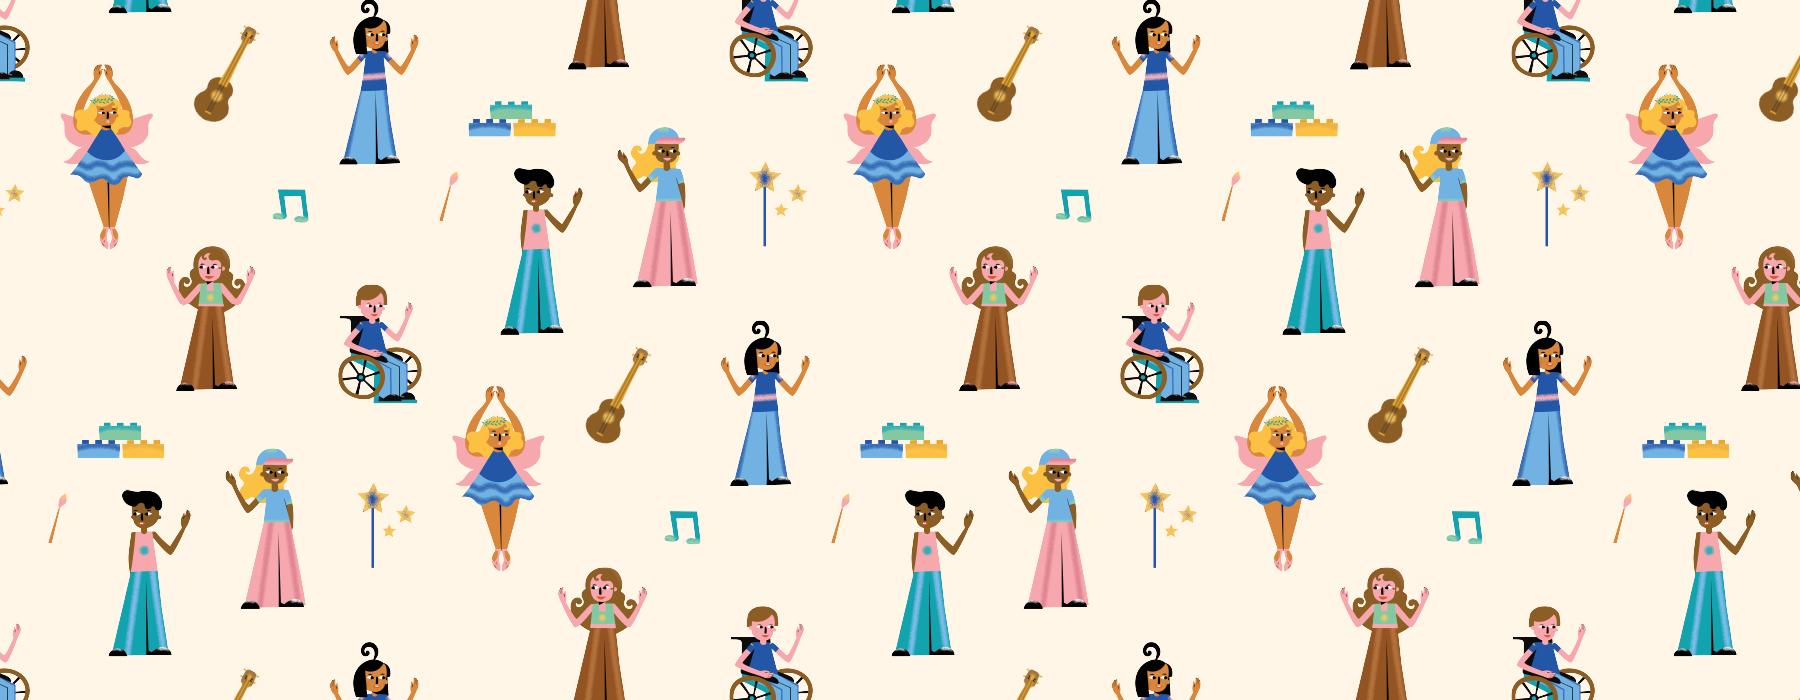 A cartoon illustration of a repeating pattern of people doing different things